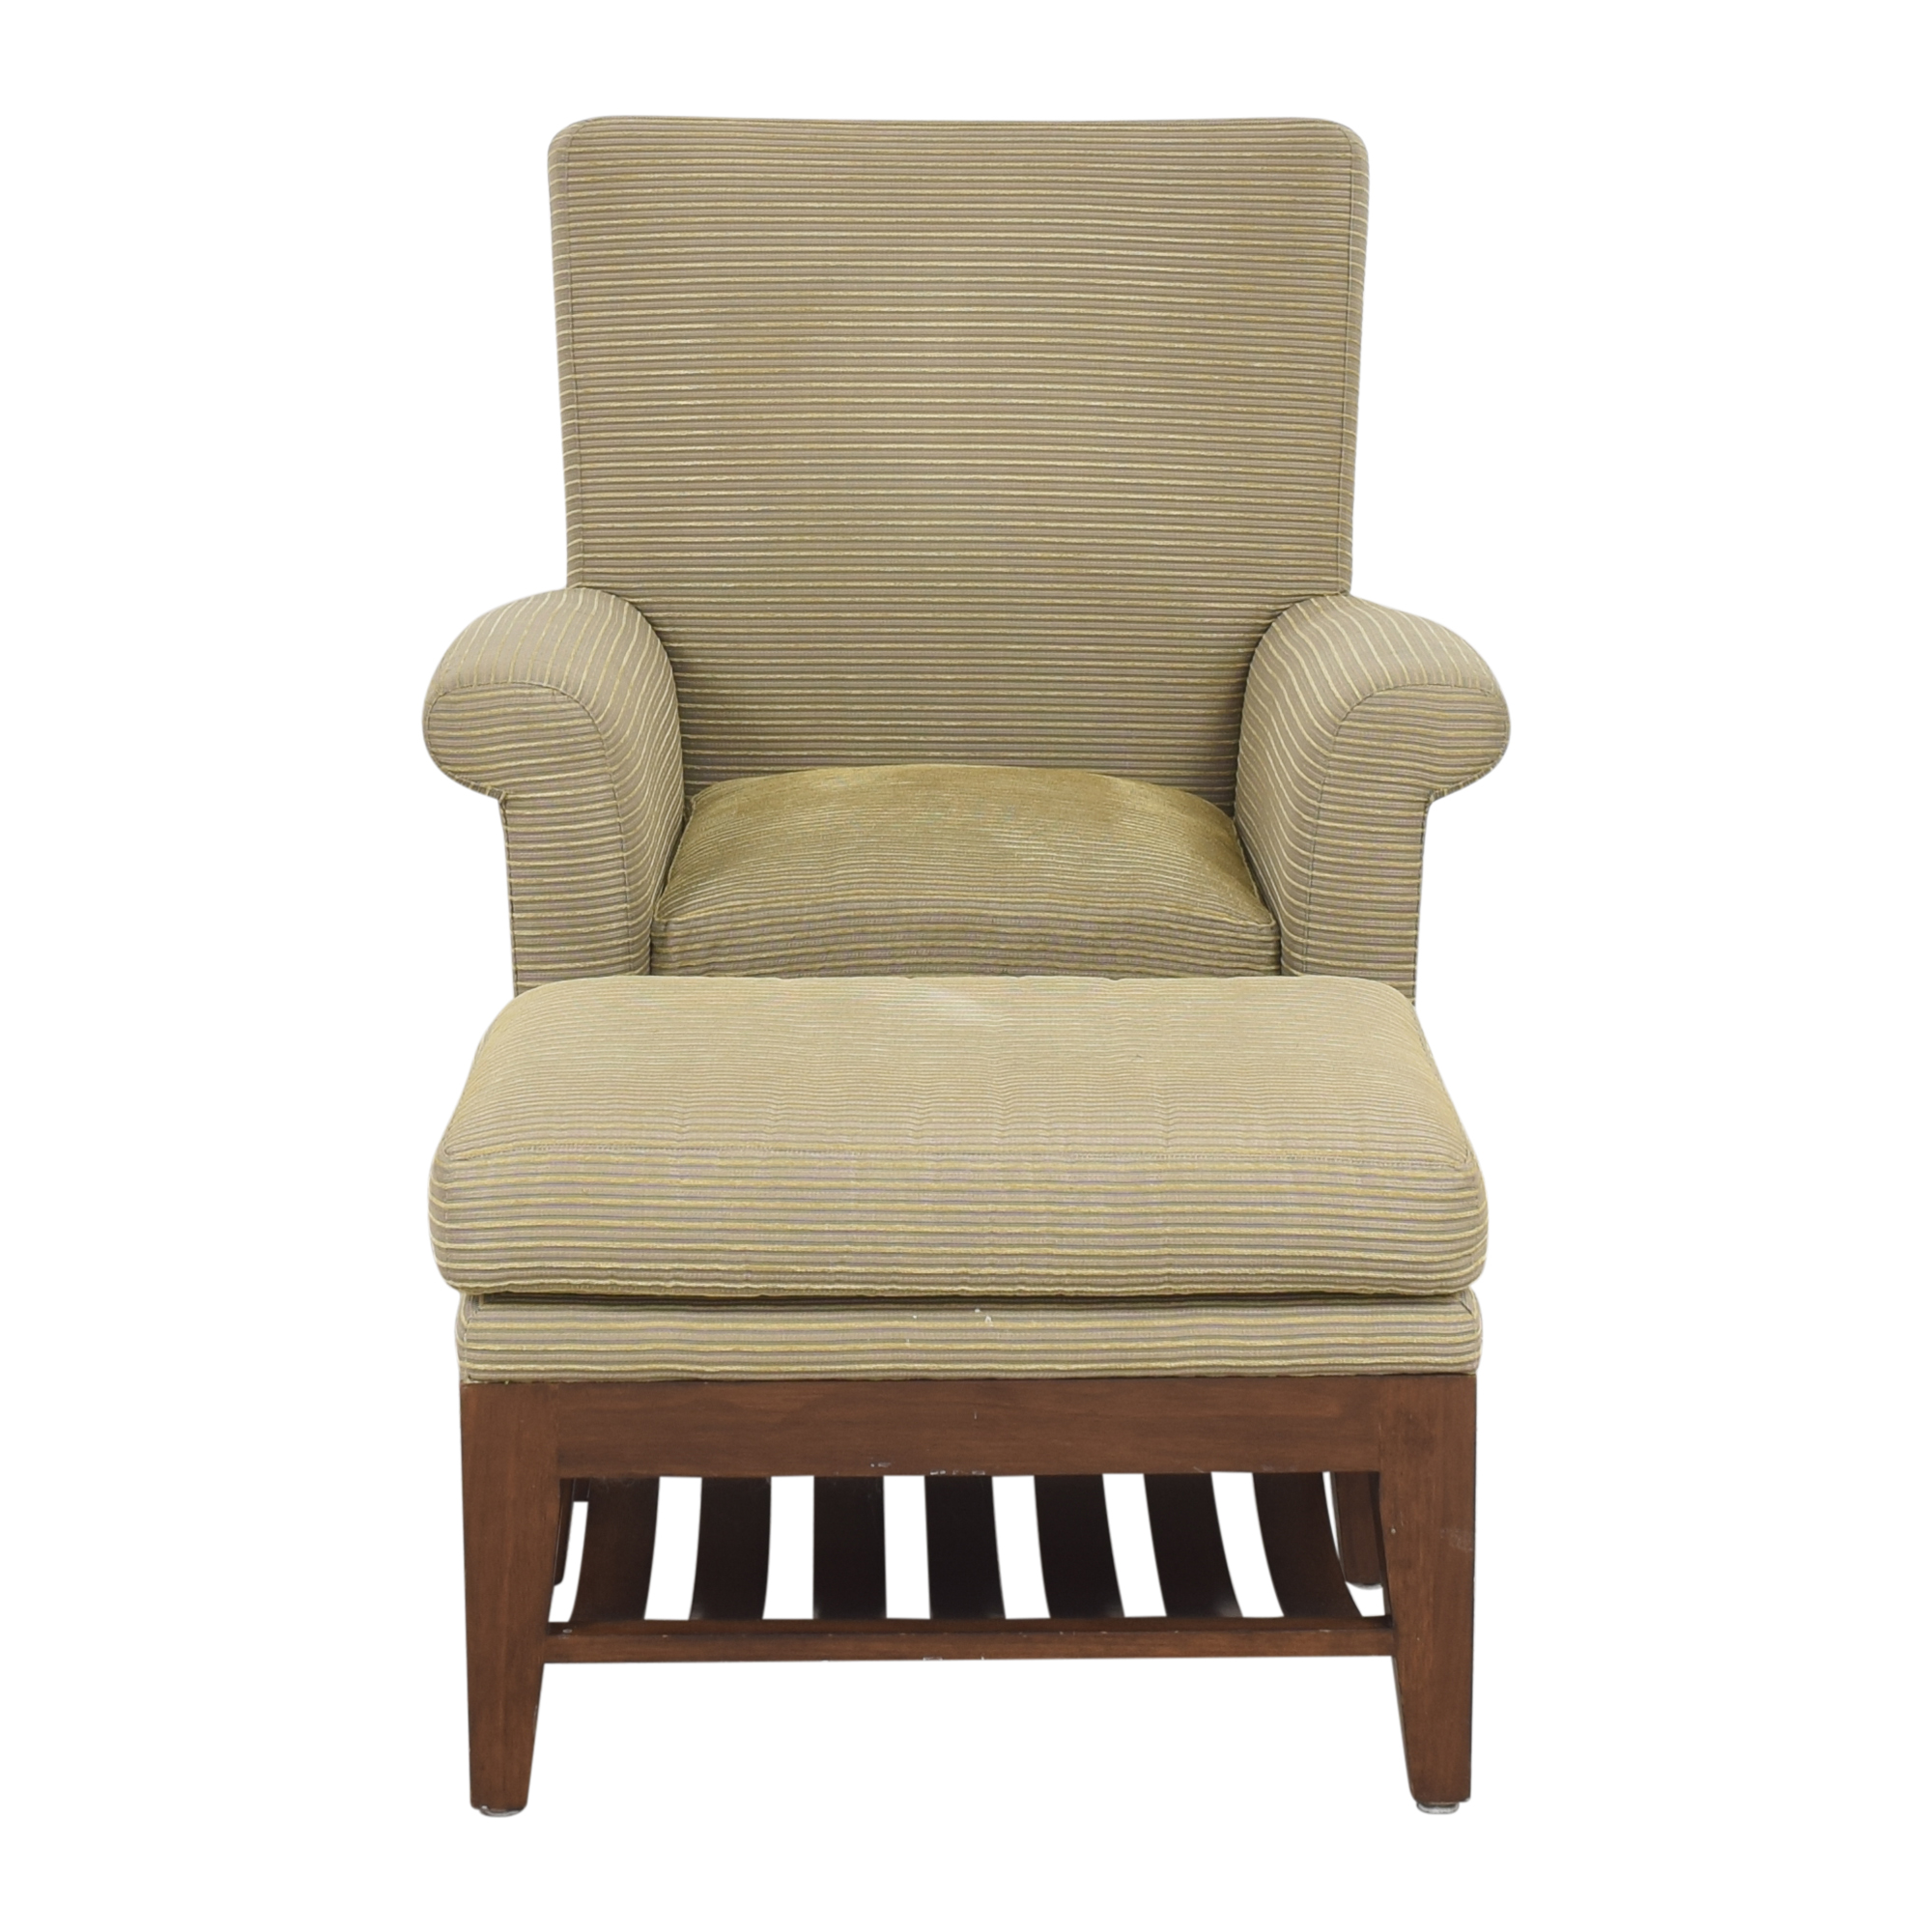 buy Ted Boerner Intermezzo Lounge Arm Chair with Ottoman Ted Boerner Chairs